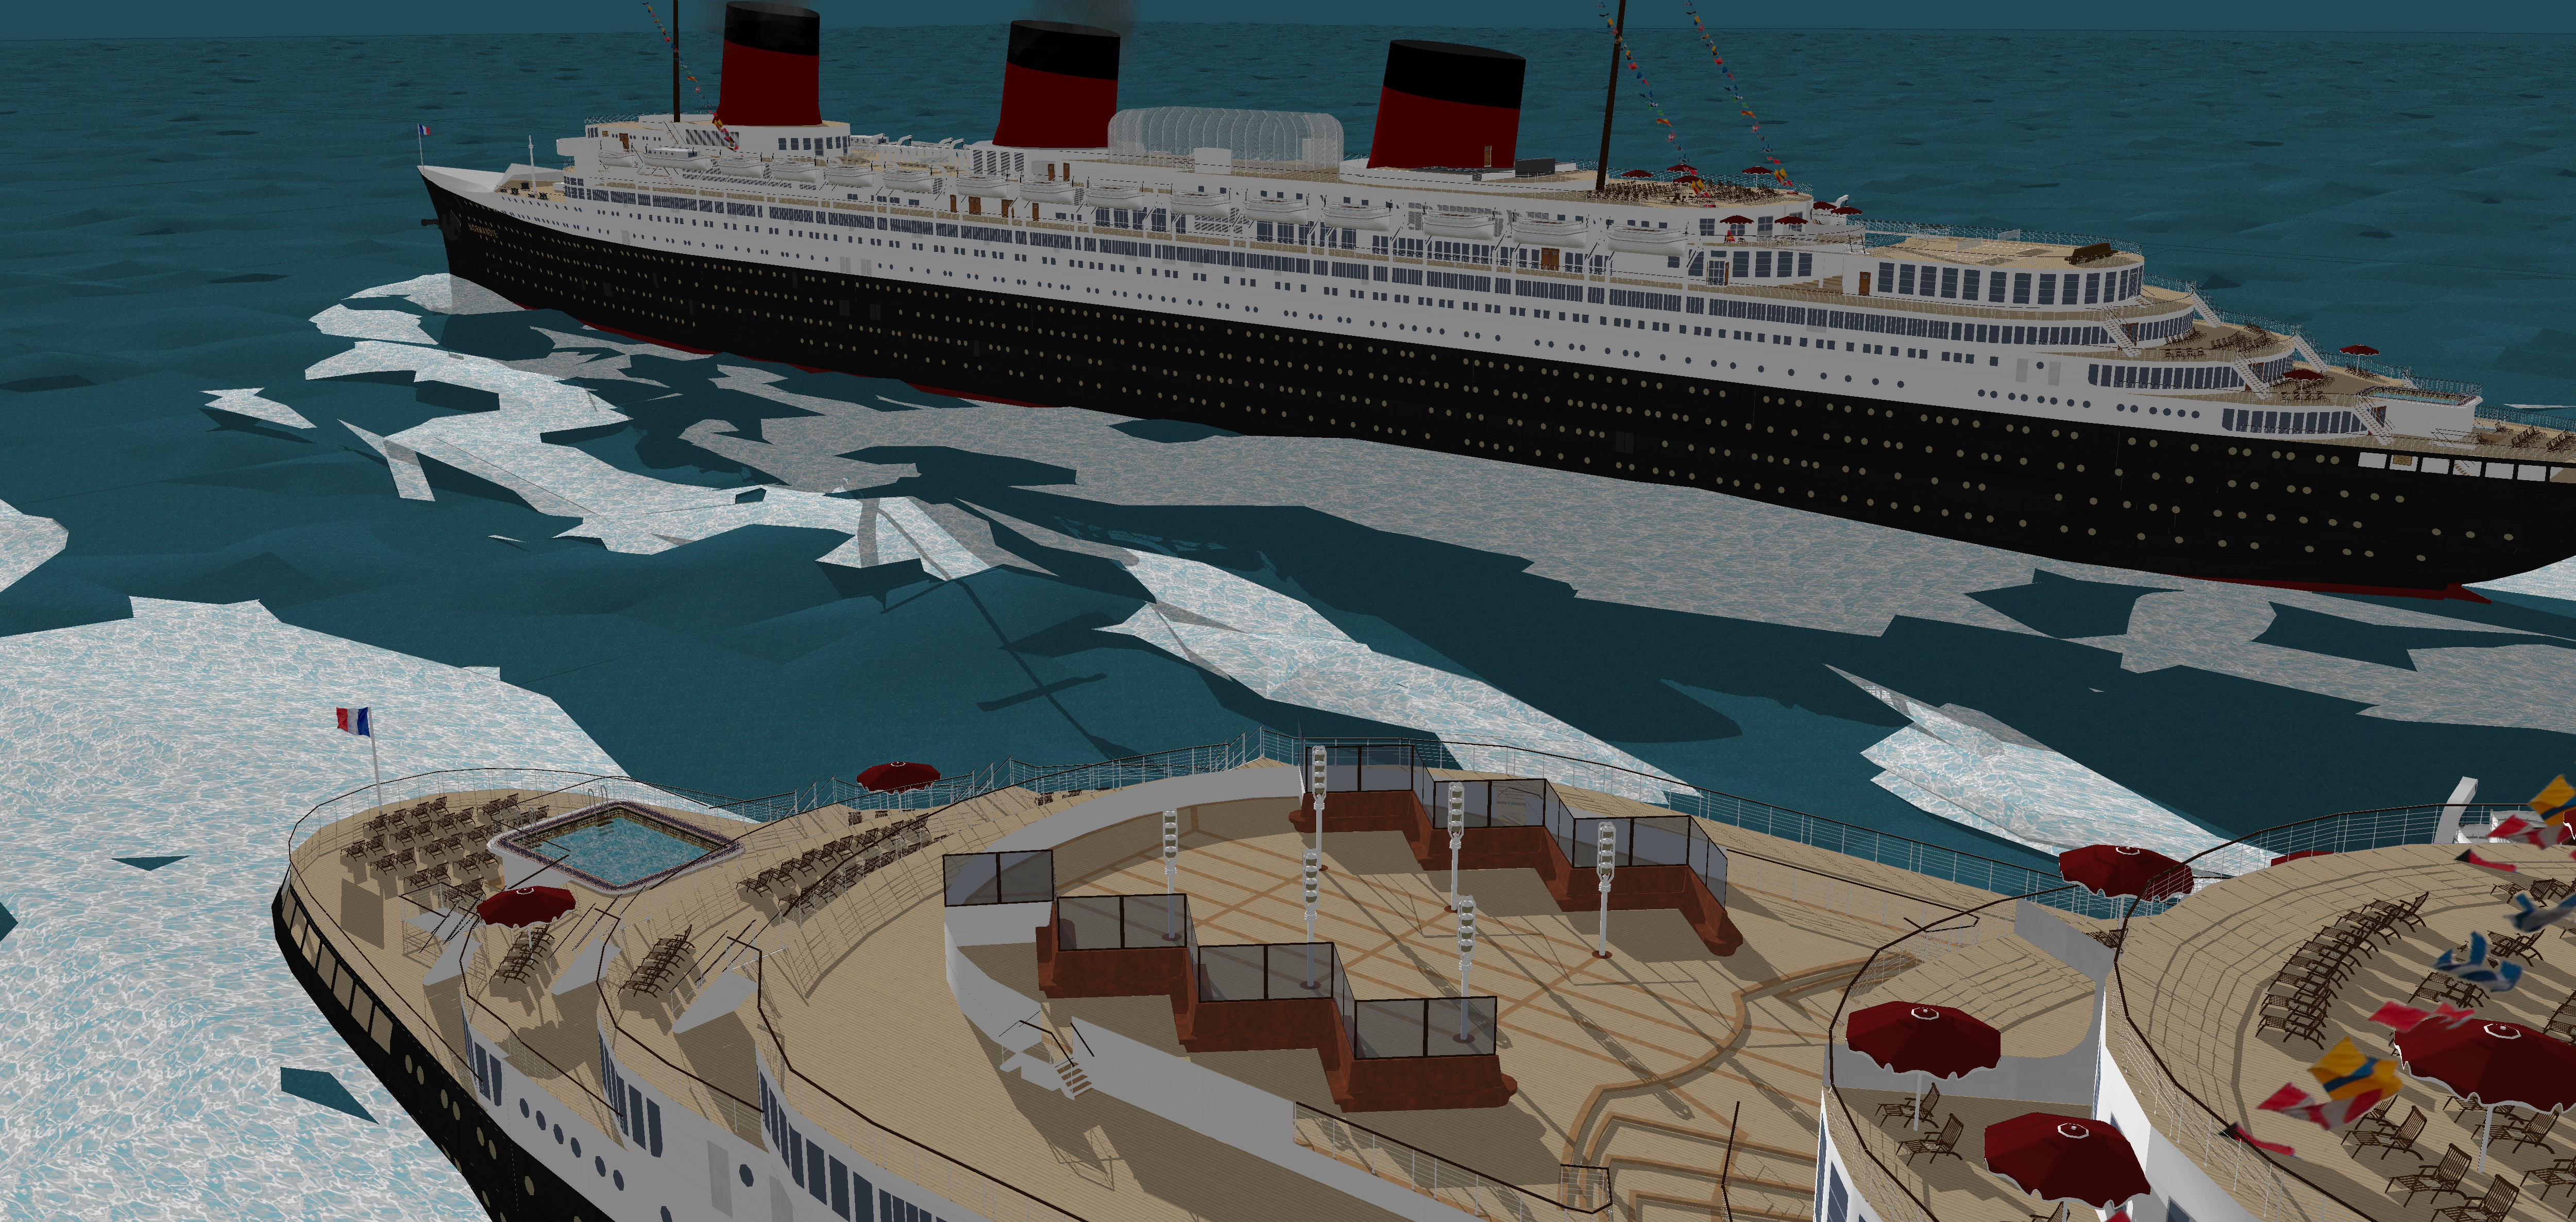 Ss Normandie 1935 And 1937 Verisons By Fabrizio3d On